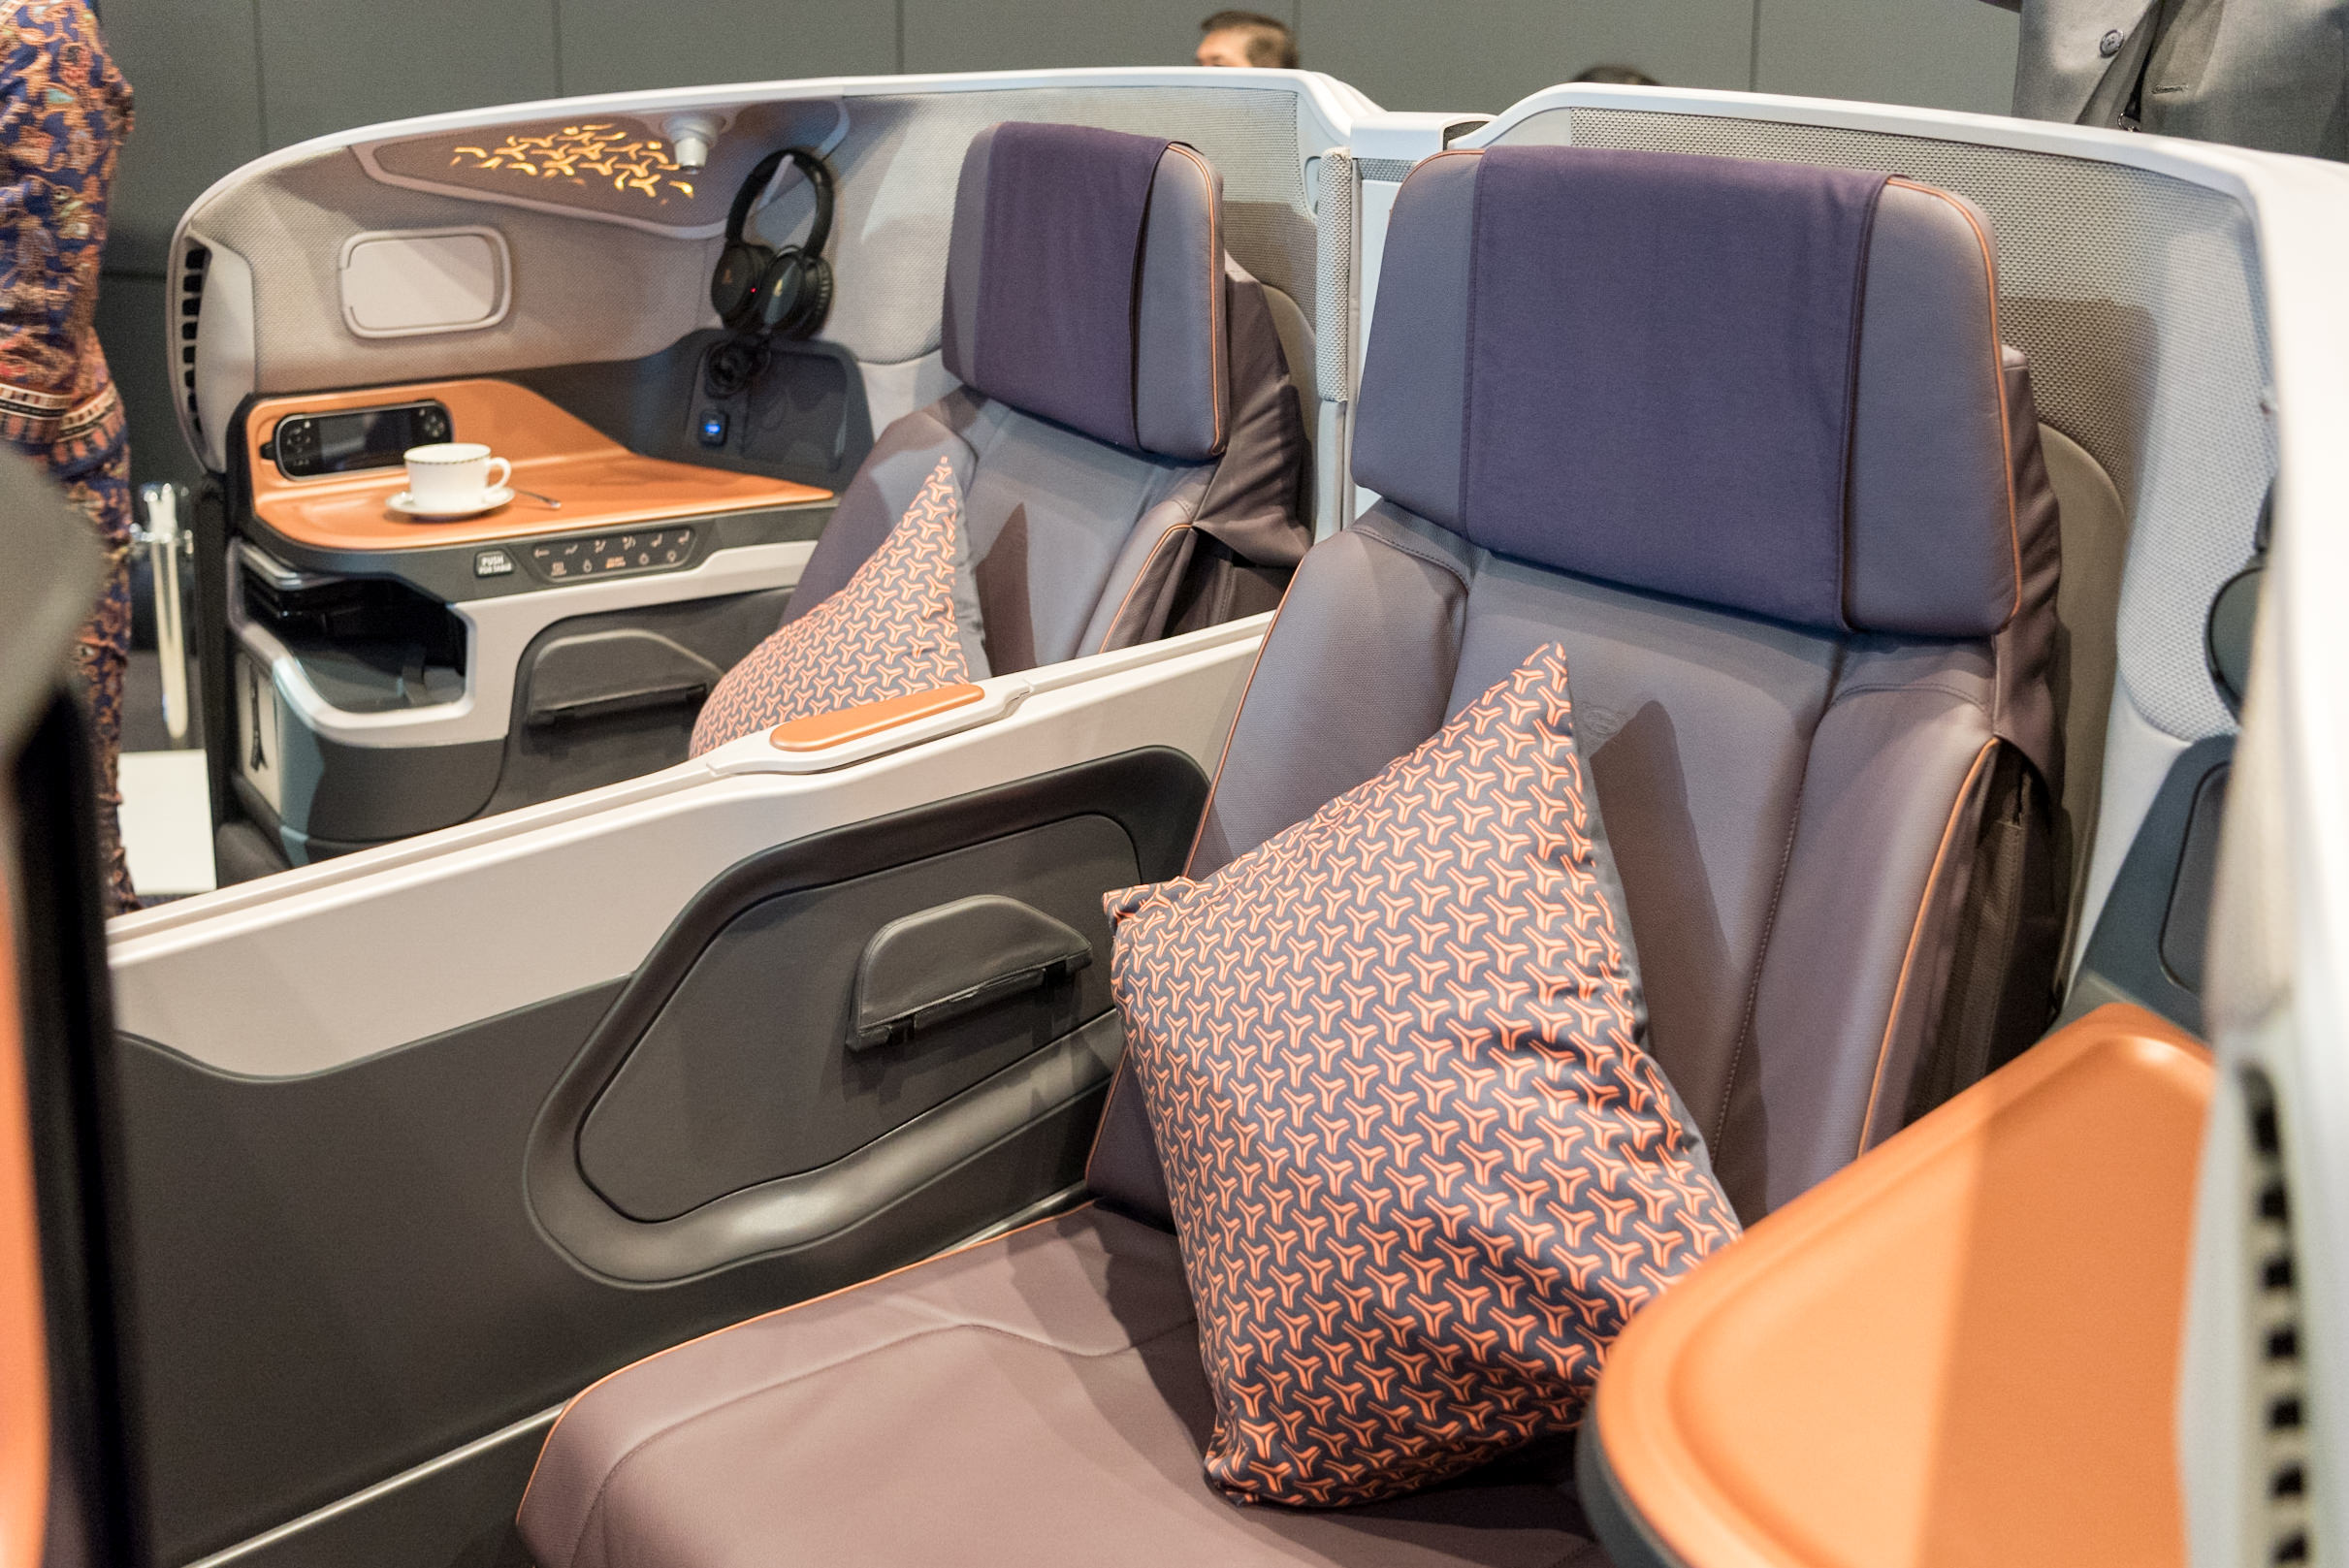 Adjustable Divider  New Business Class (2017) Product on Singapore Airlines' A380